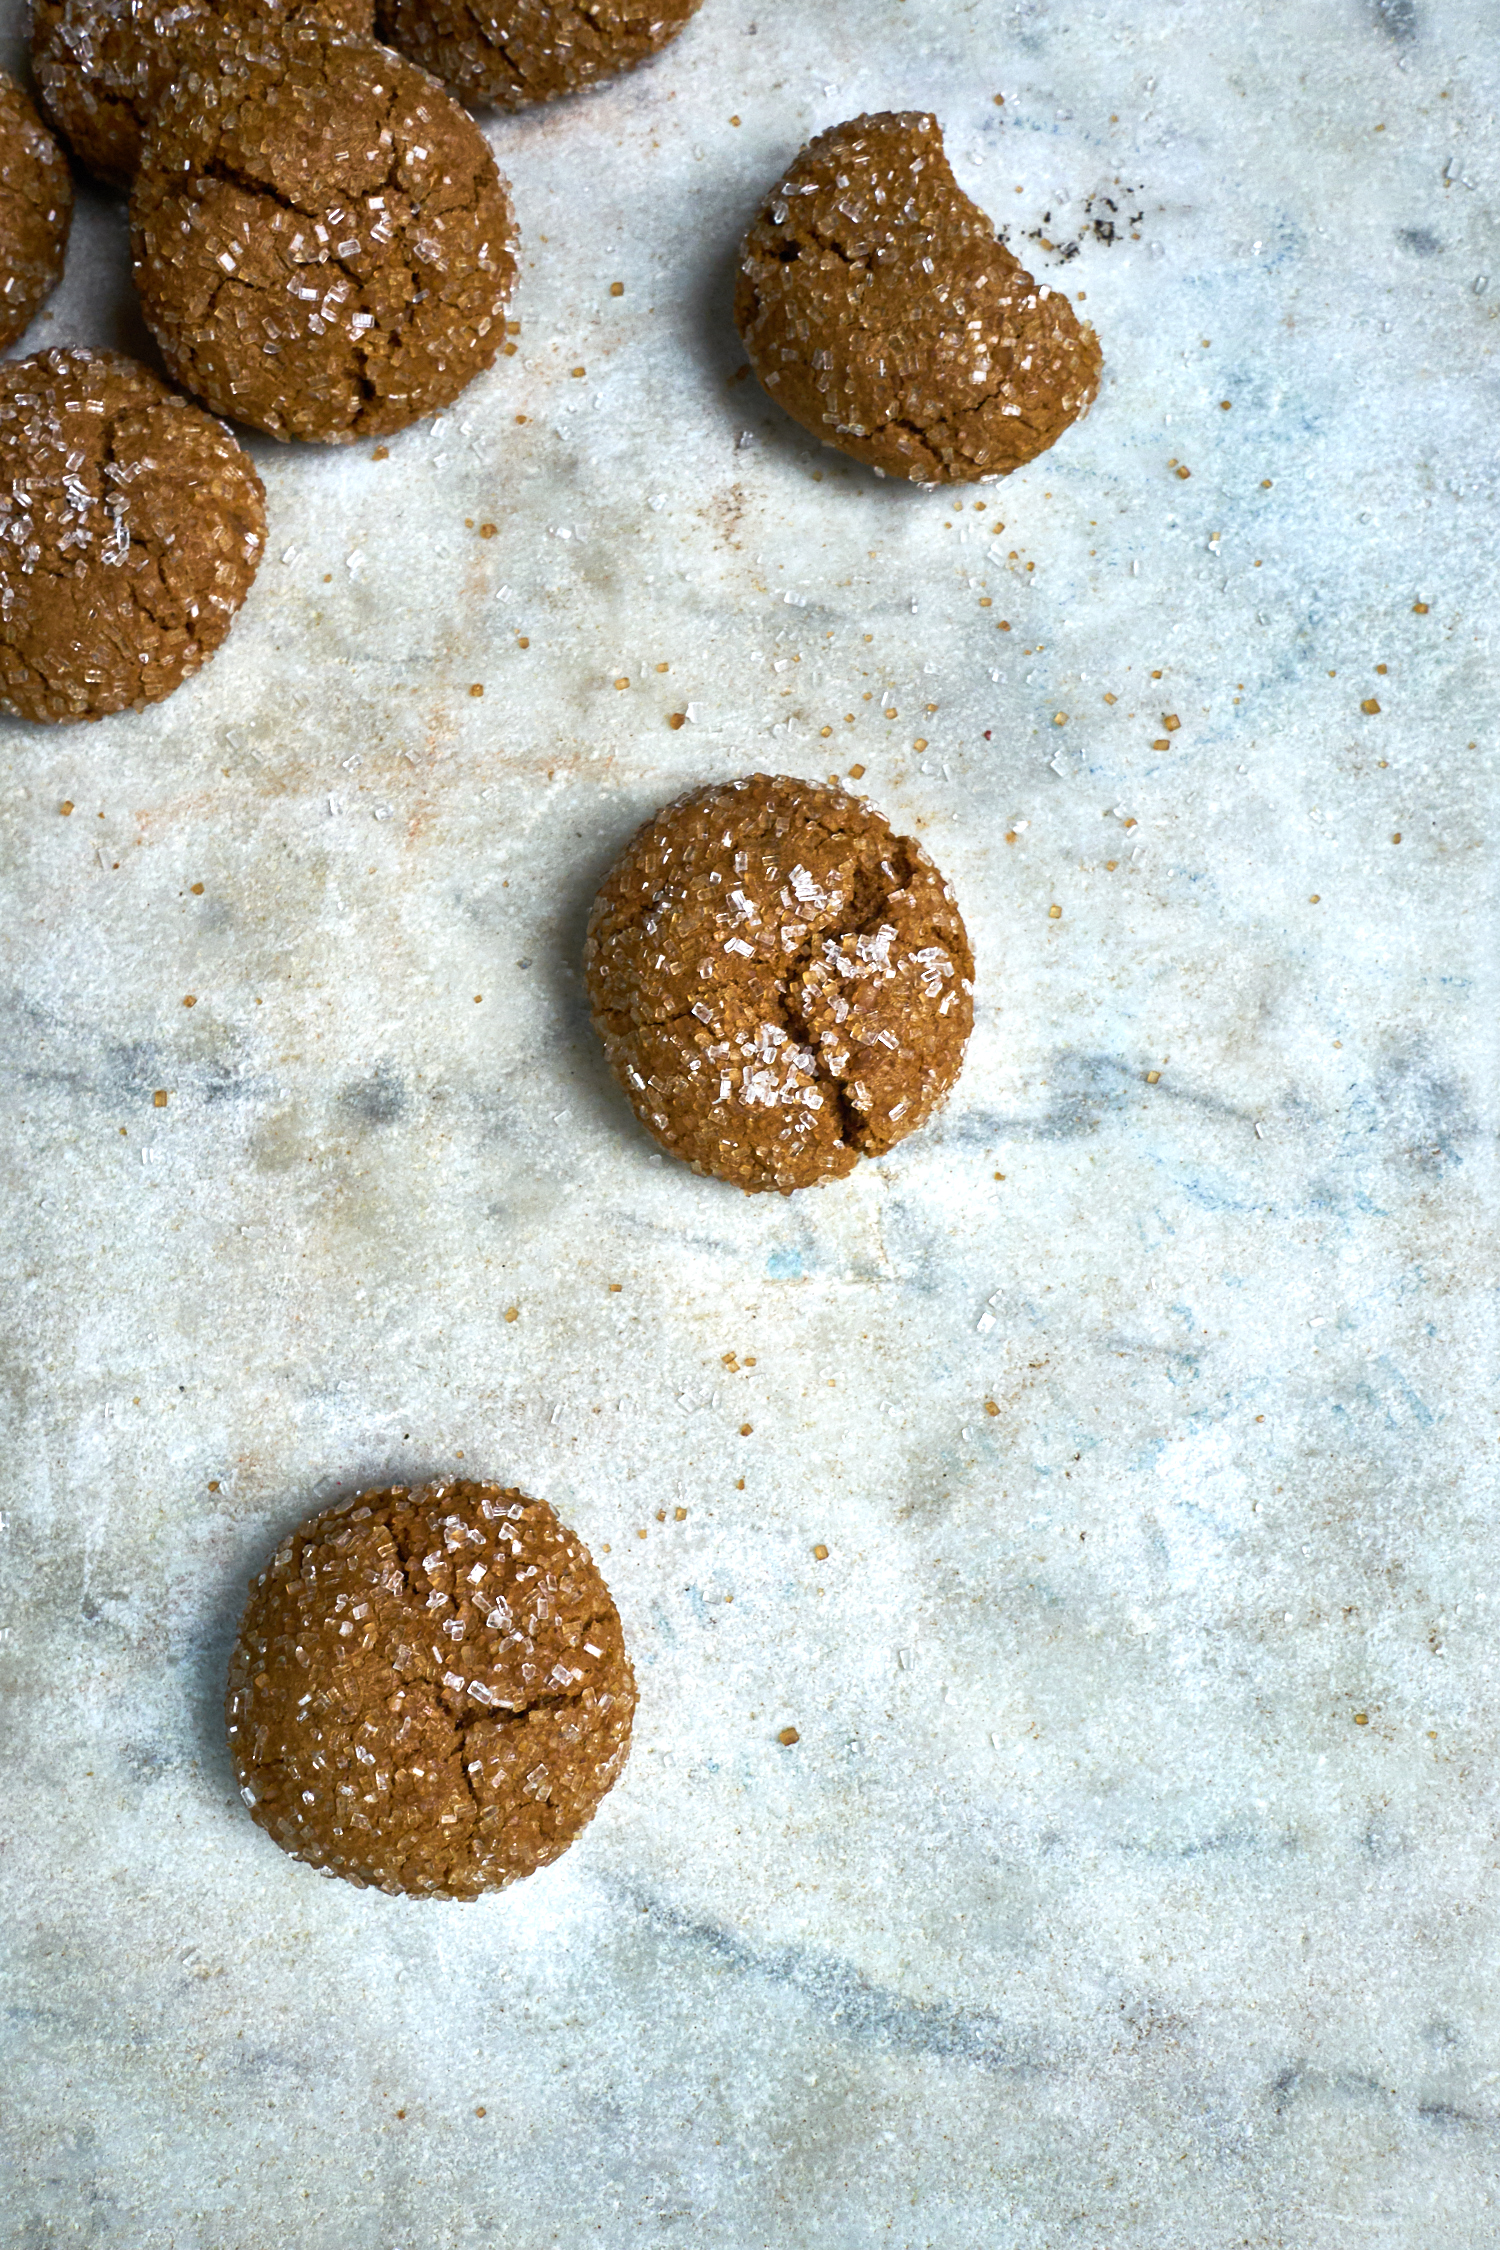 Tiger ginger cookie recipe